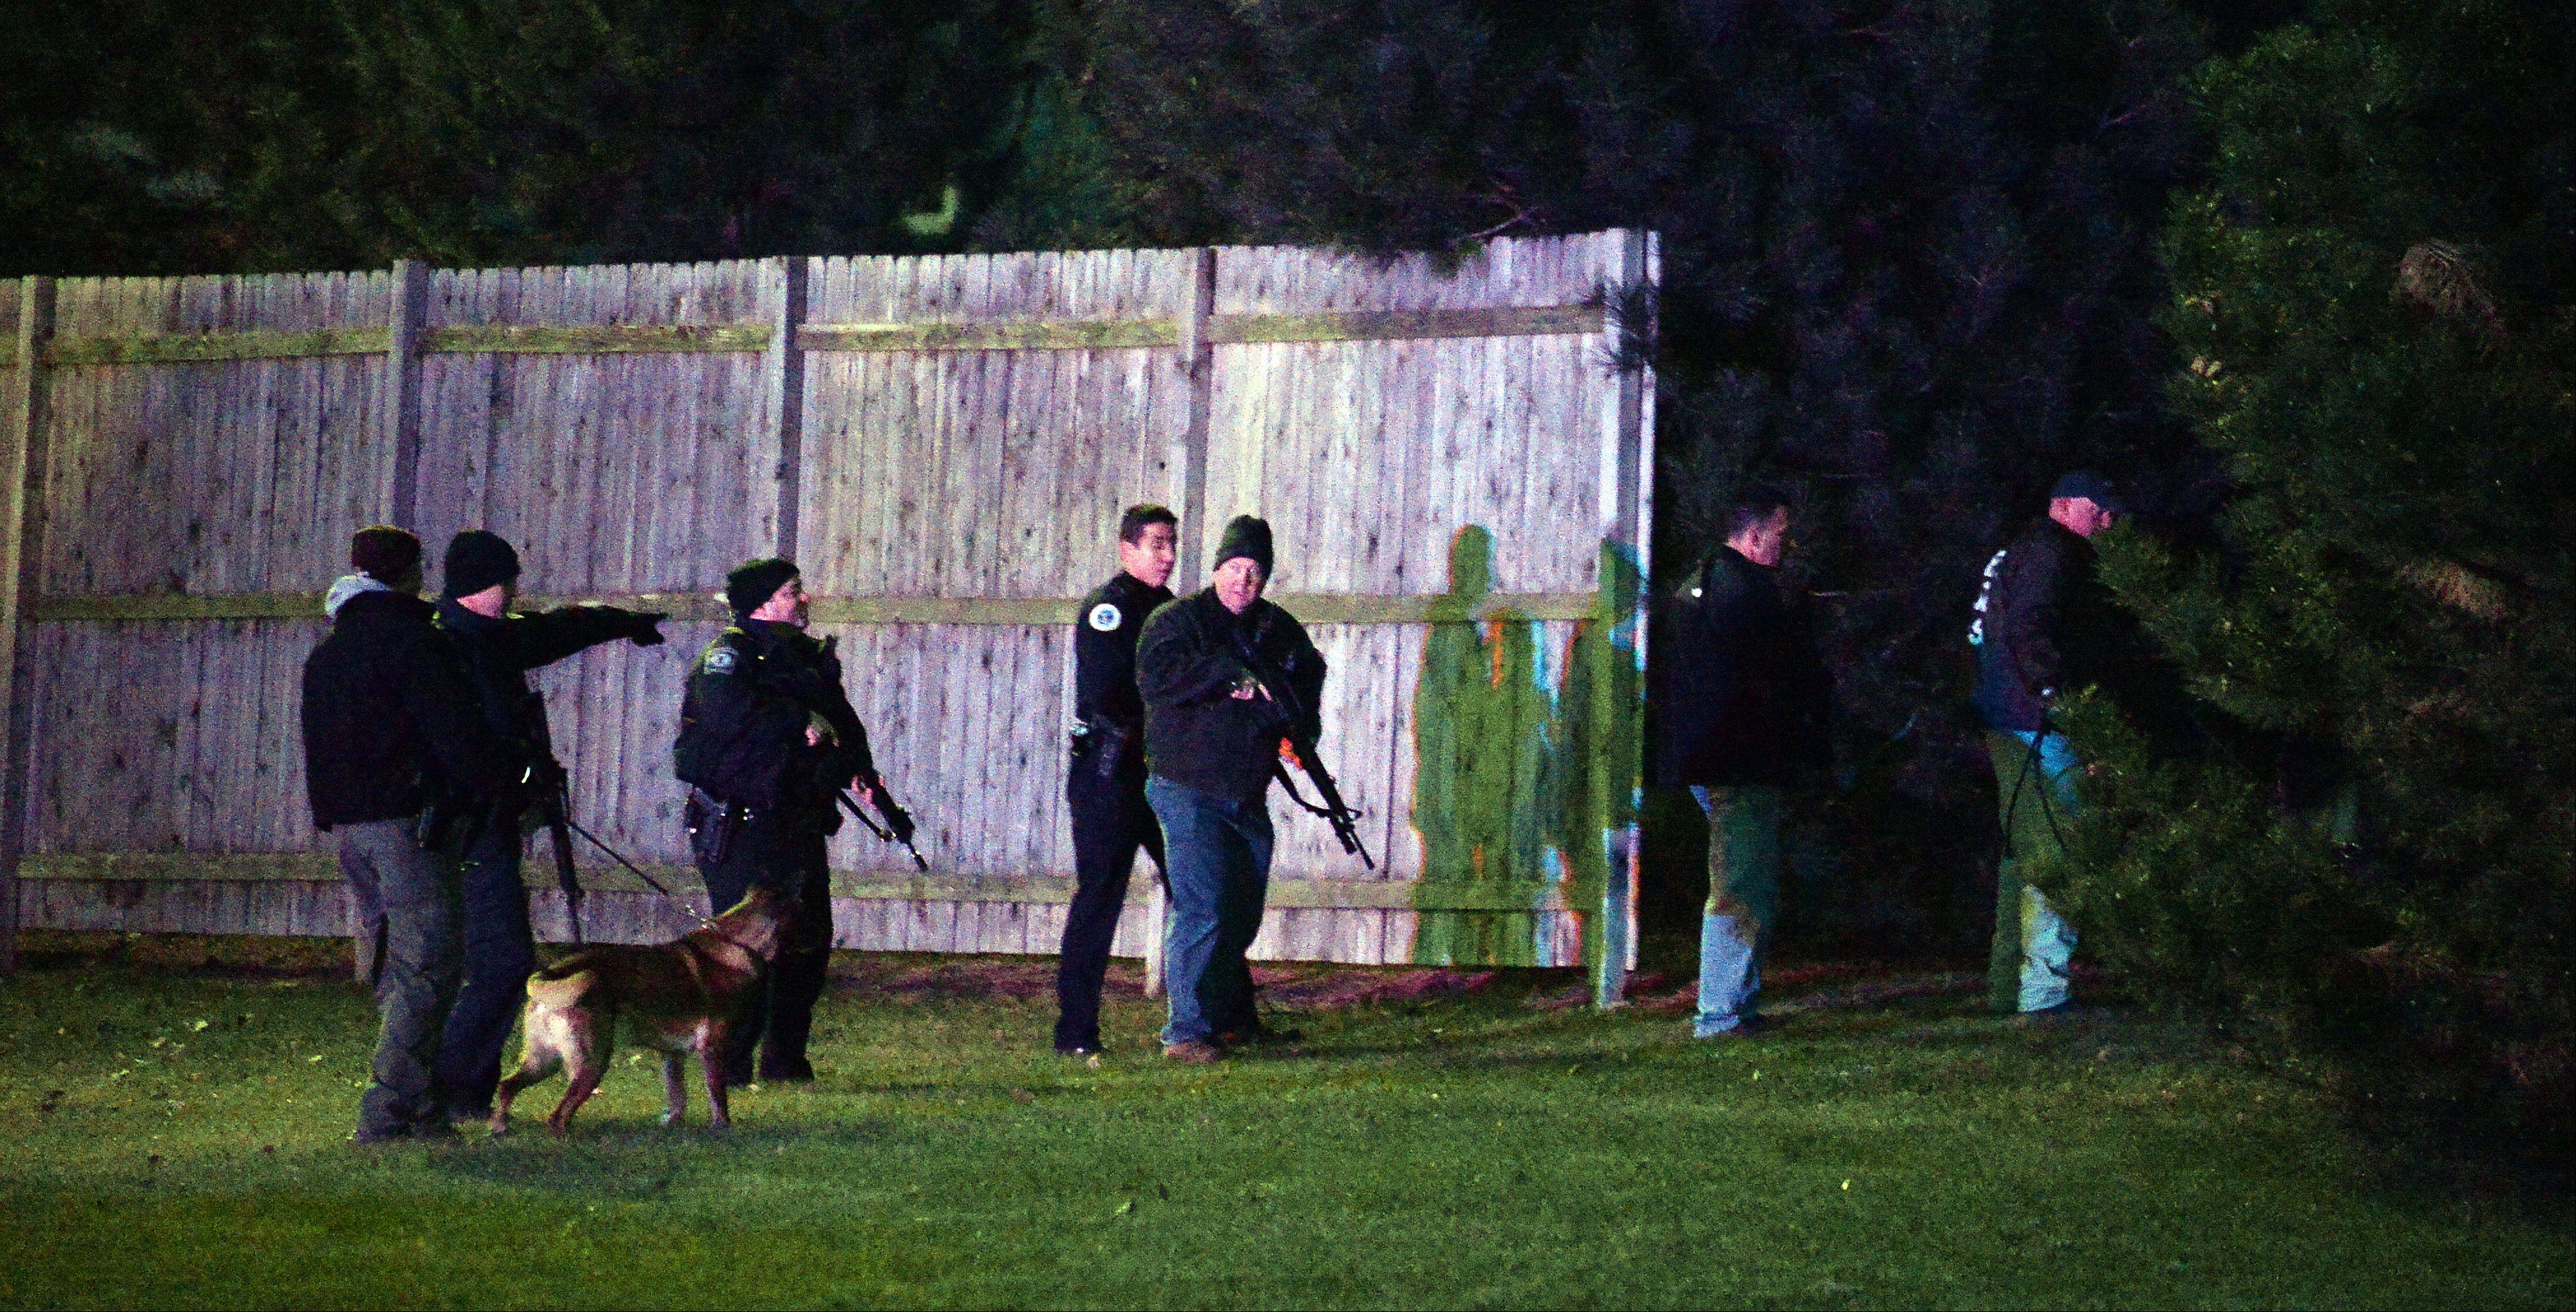 Palatine police and the sheriff's department with their dogs search the yards behind the Chase bank in palatine after and afternoon bank robbery.